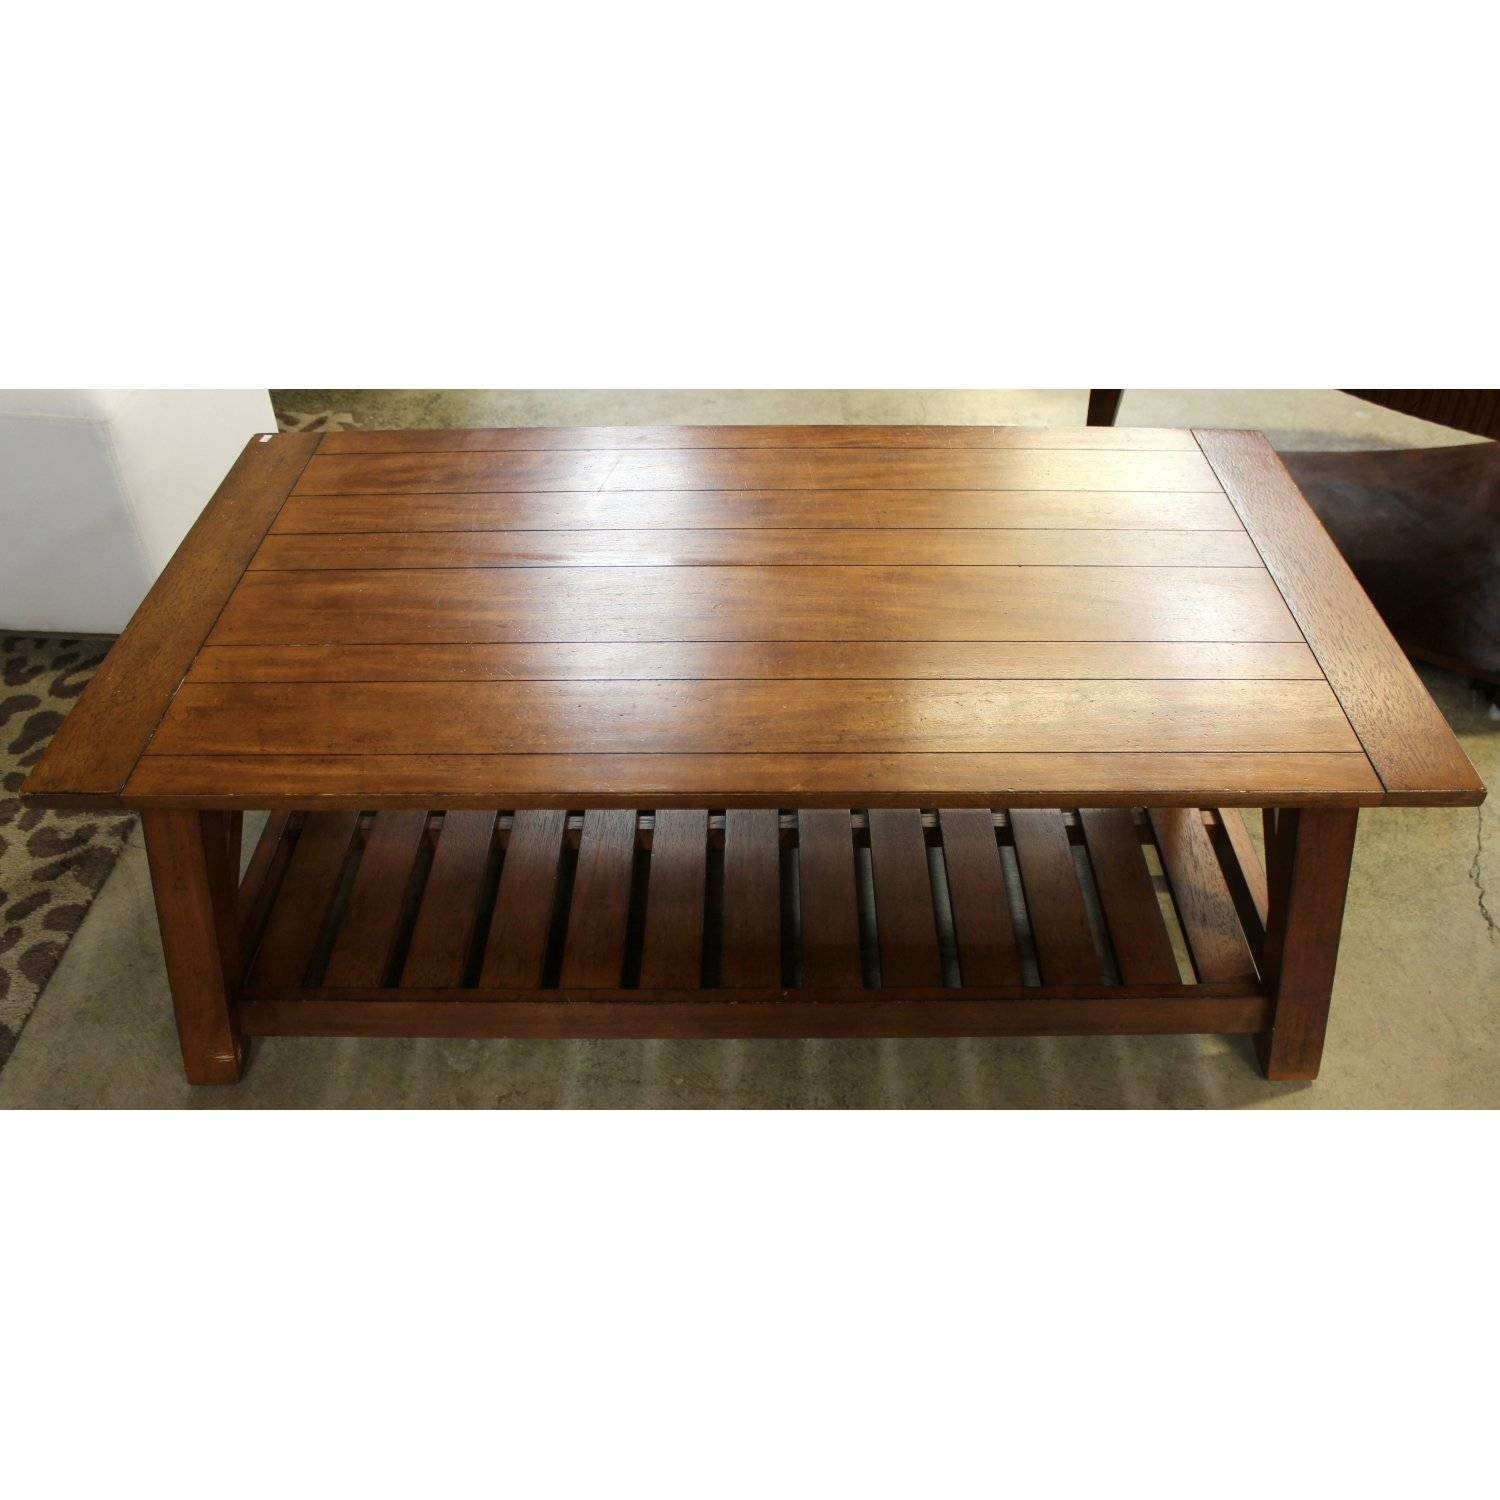 Ethan Allen Mahogany Coffee Table | Upscale Consignment within Mahogany Coffee Tables (Image 12 of 30)